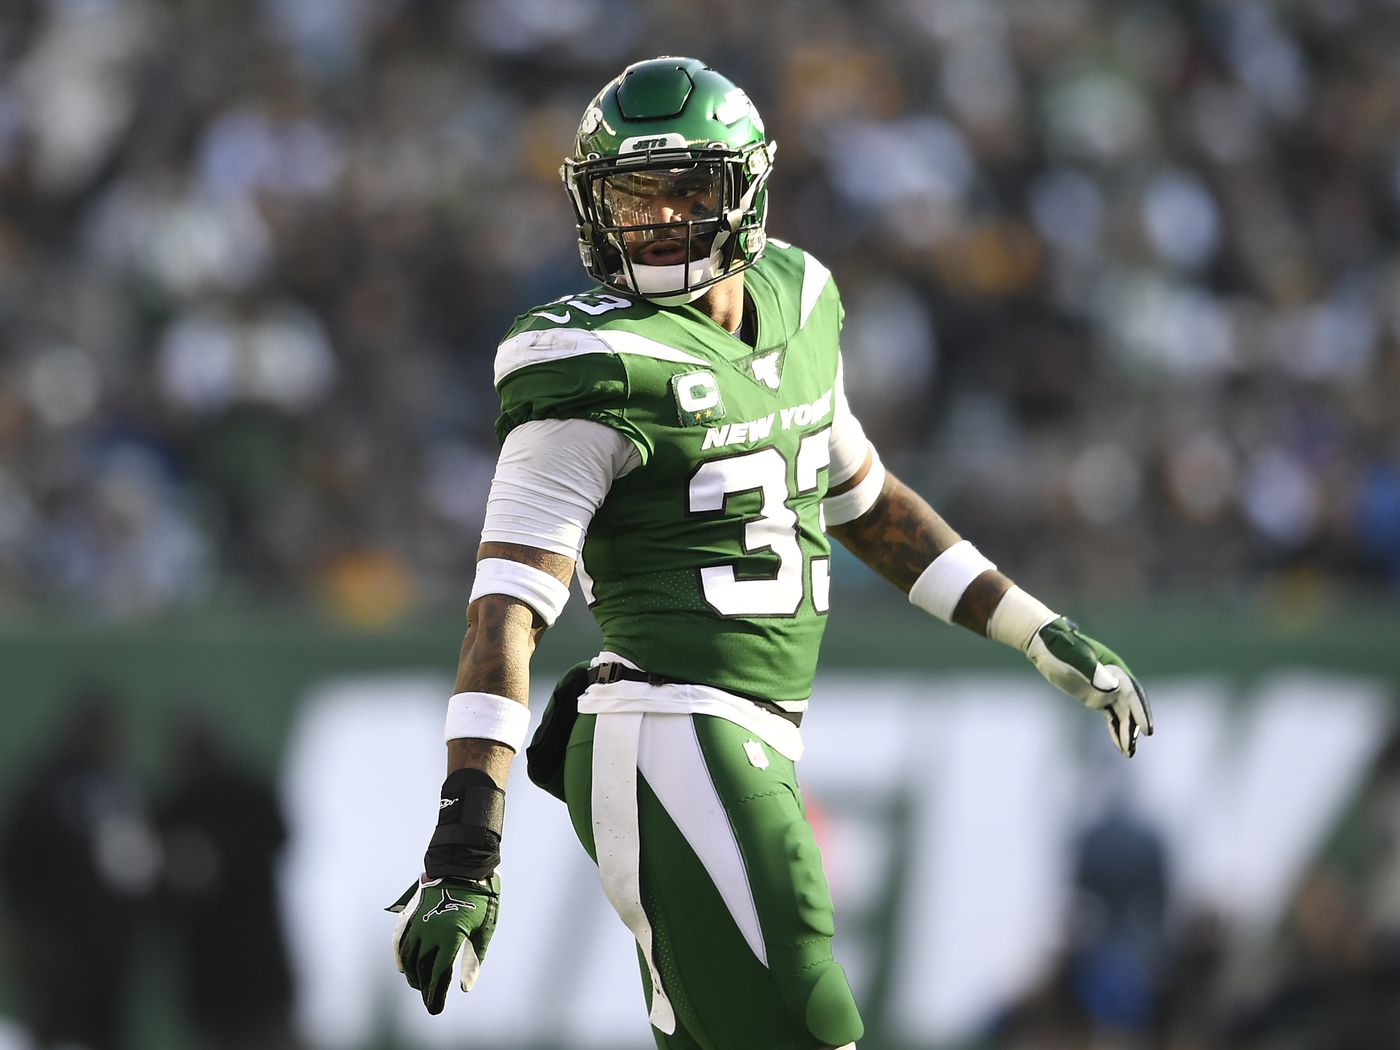 Here S Why It S A Risk For The Seattle Seahawks To Let Jamal Adams Play 2020 On His Rookie Contract Field Gulls